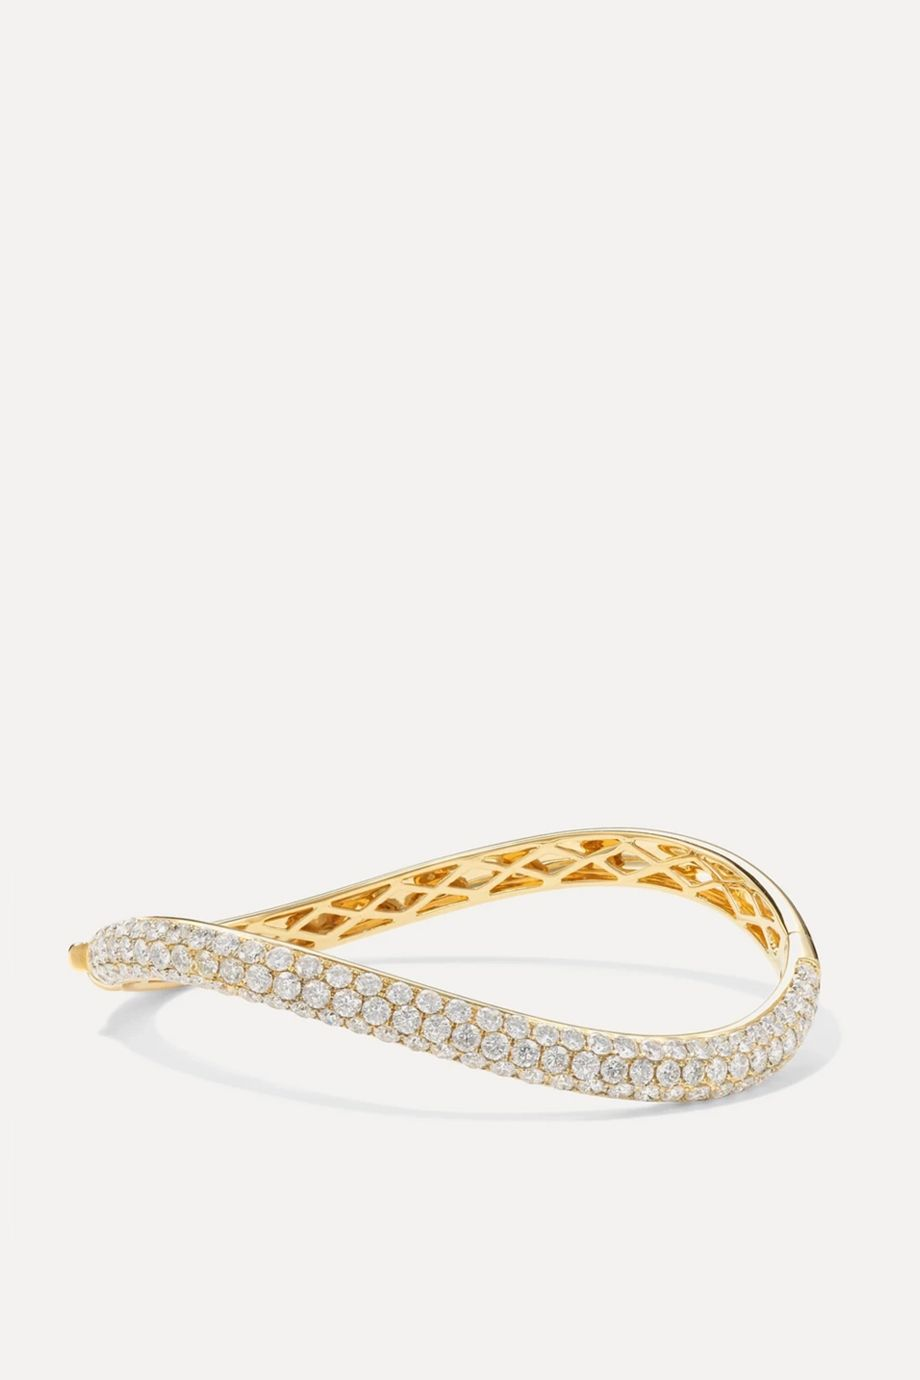 Anita Ko 18-karat gold diamond bangle